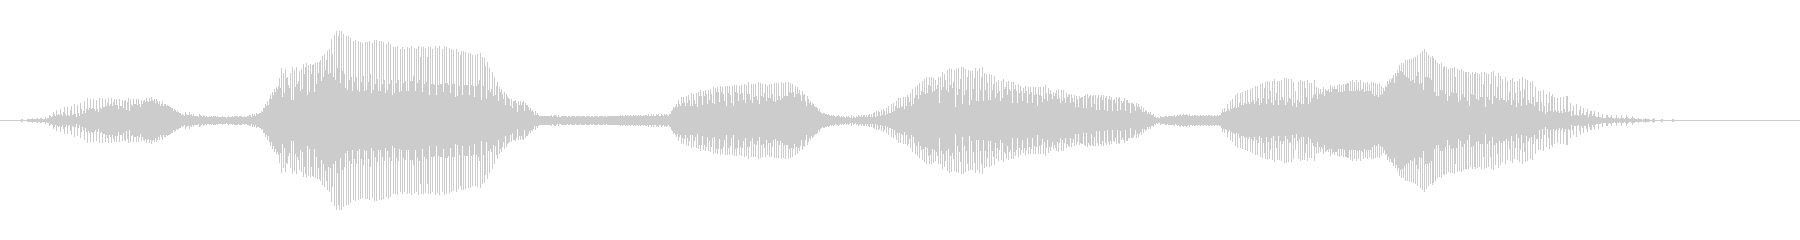 """6 year old girl """"2022""""-02's unreproduced waveform"""